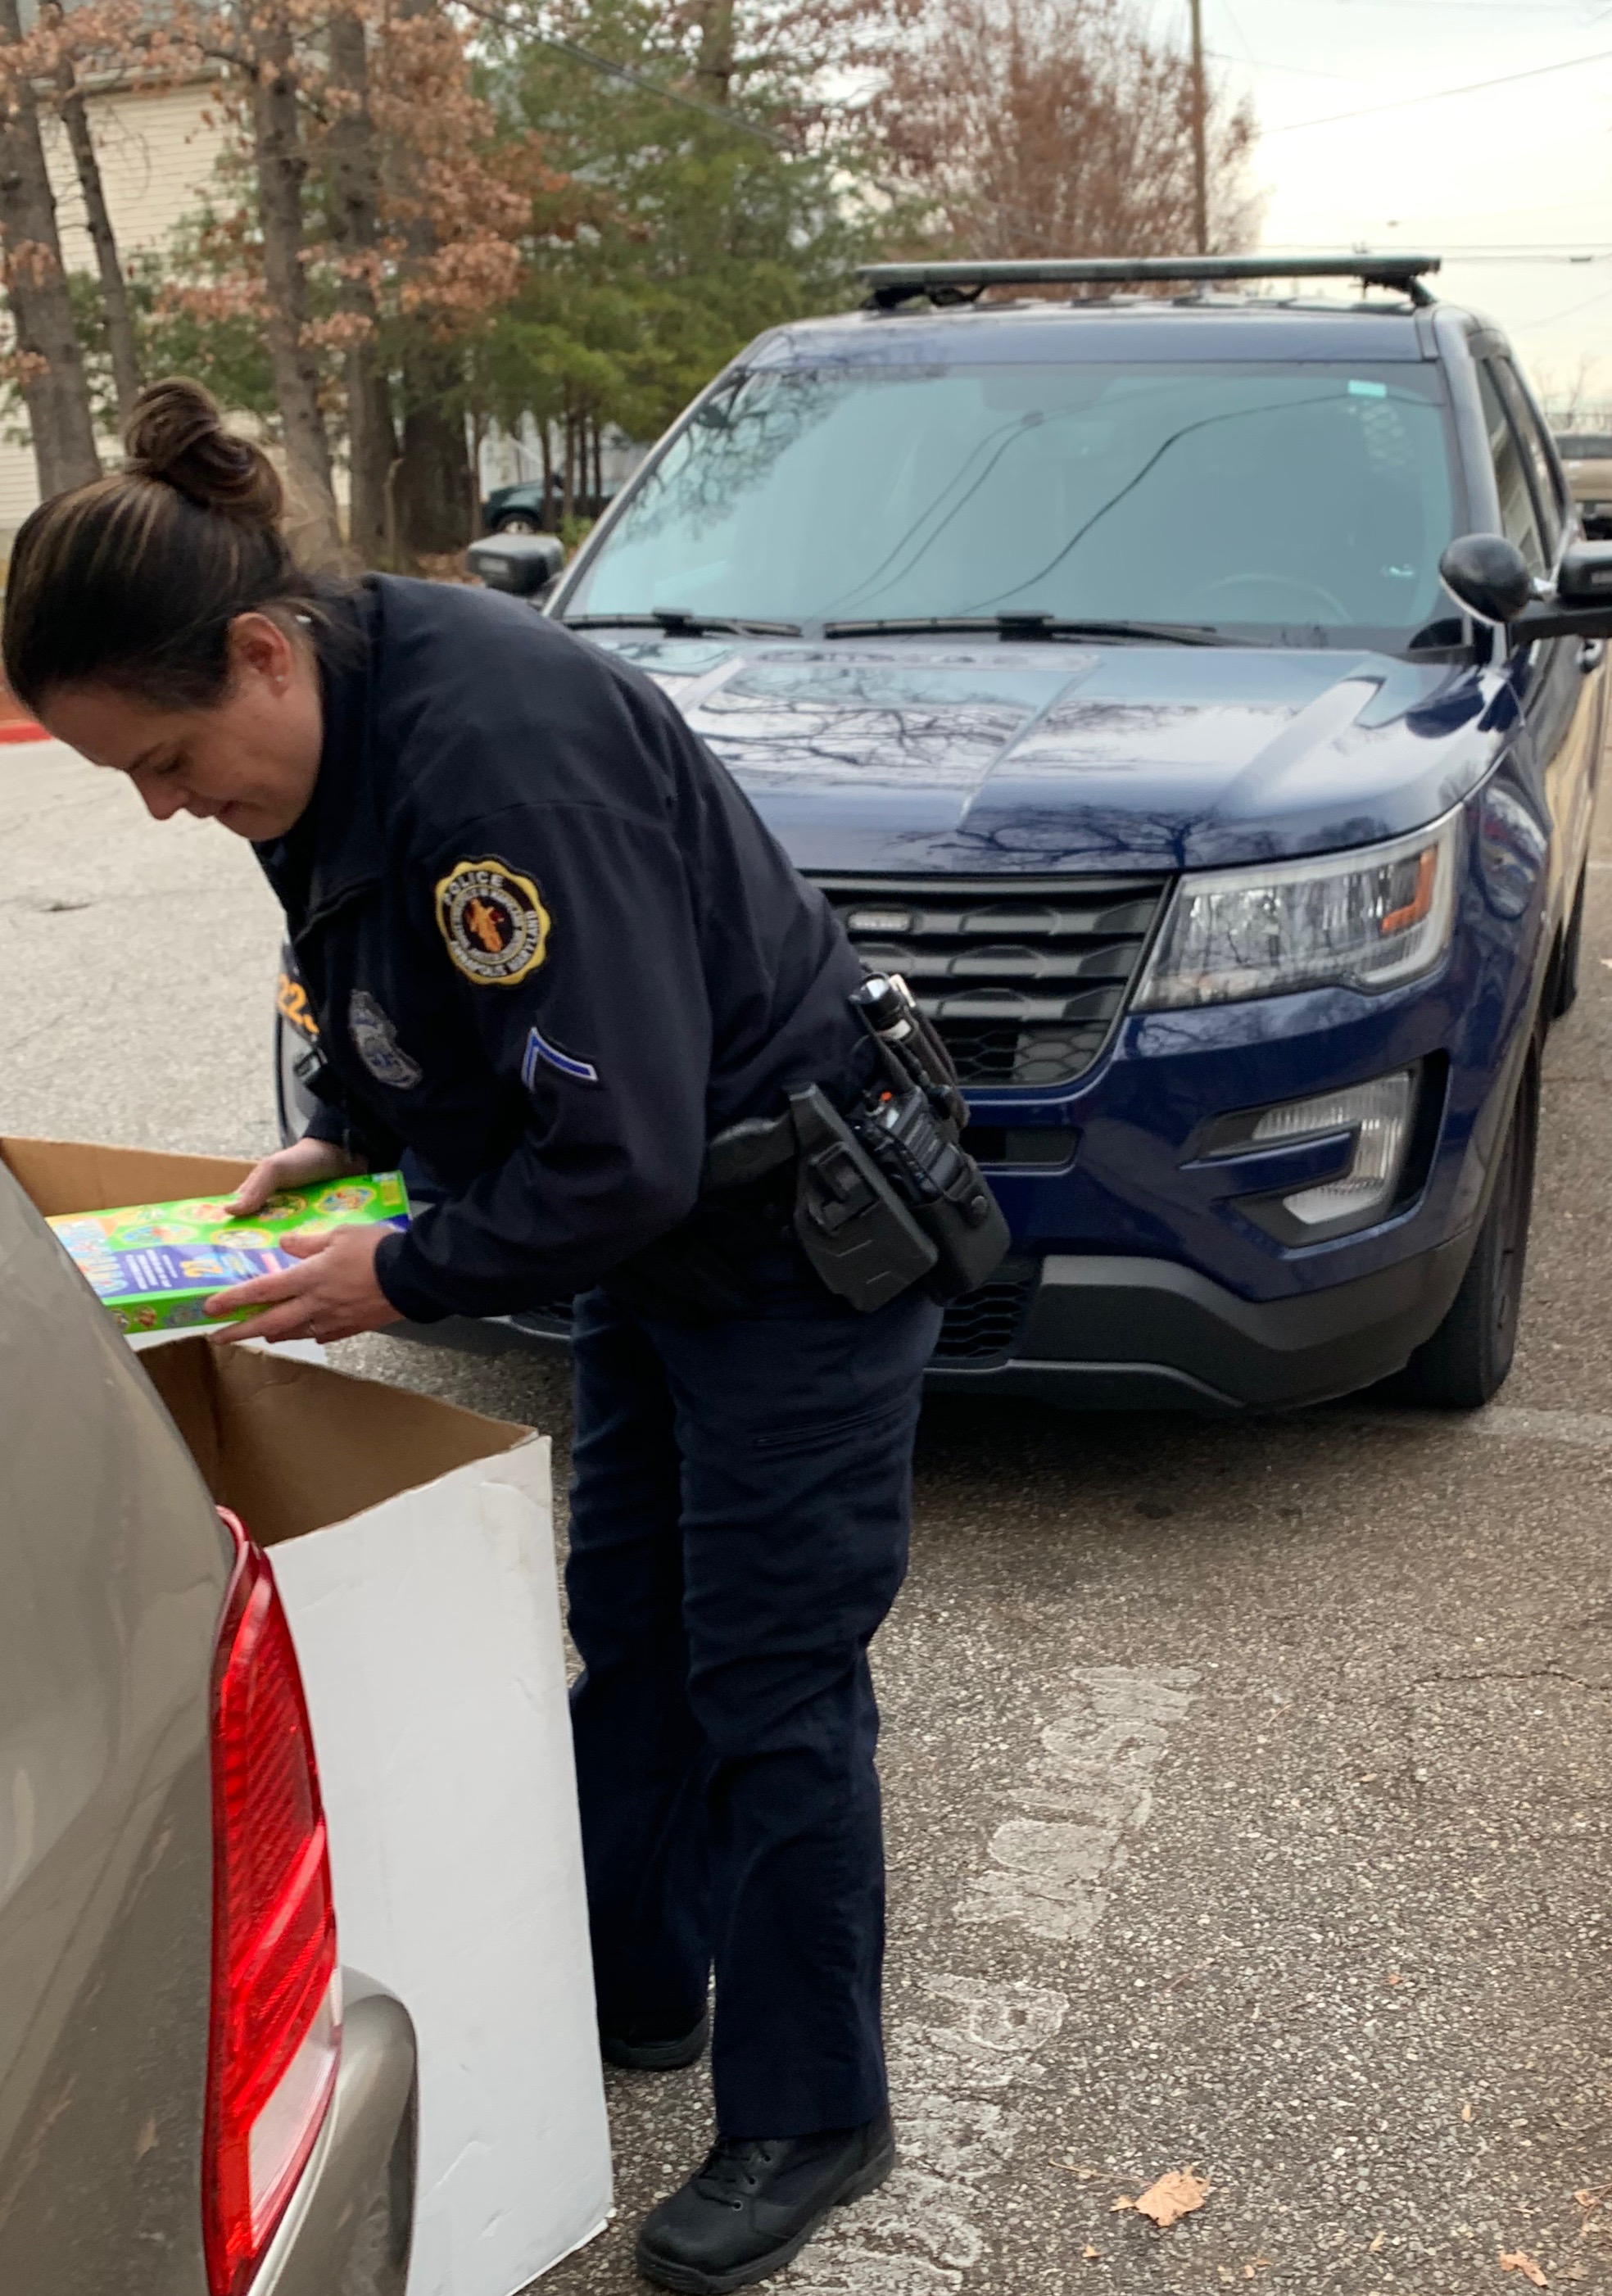 Officer removing toys from a box.